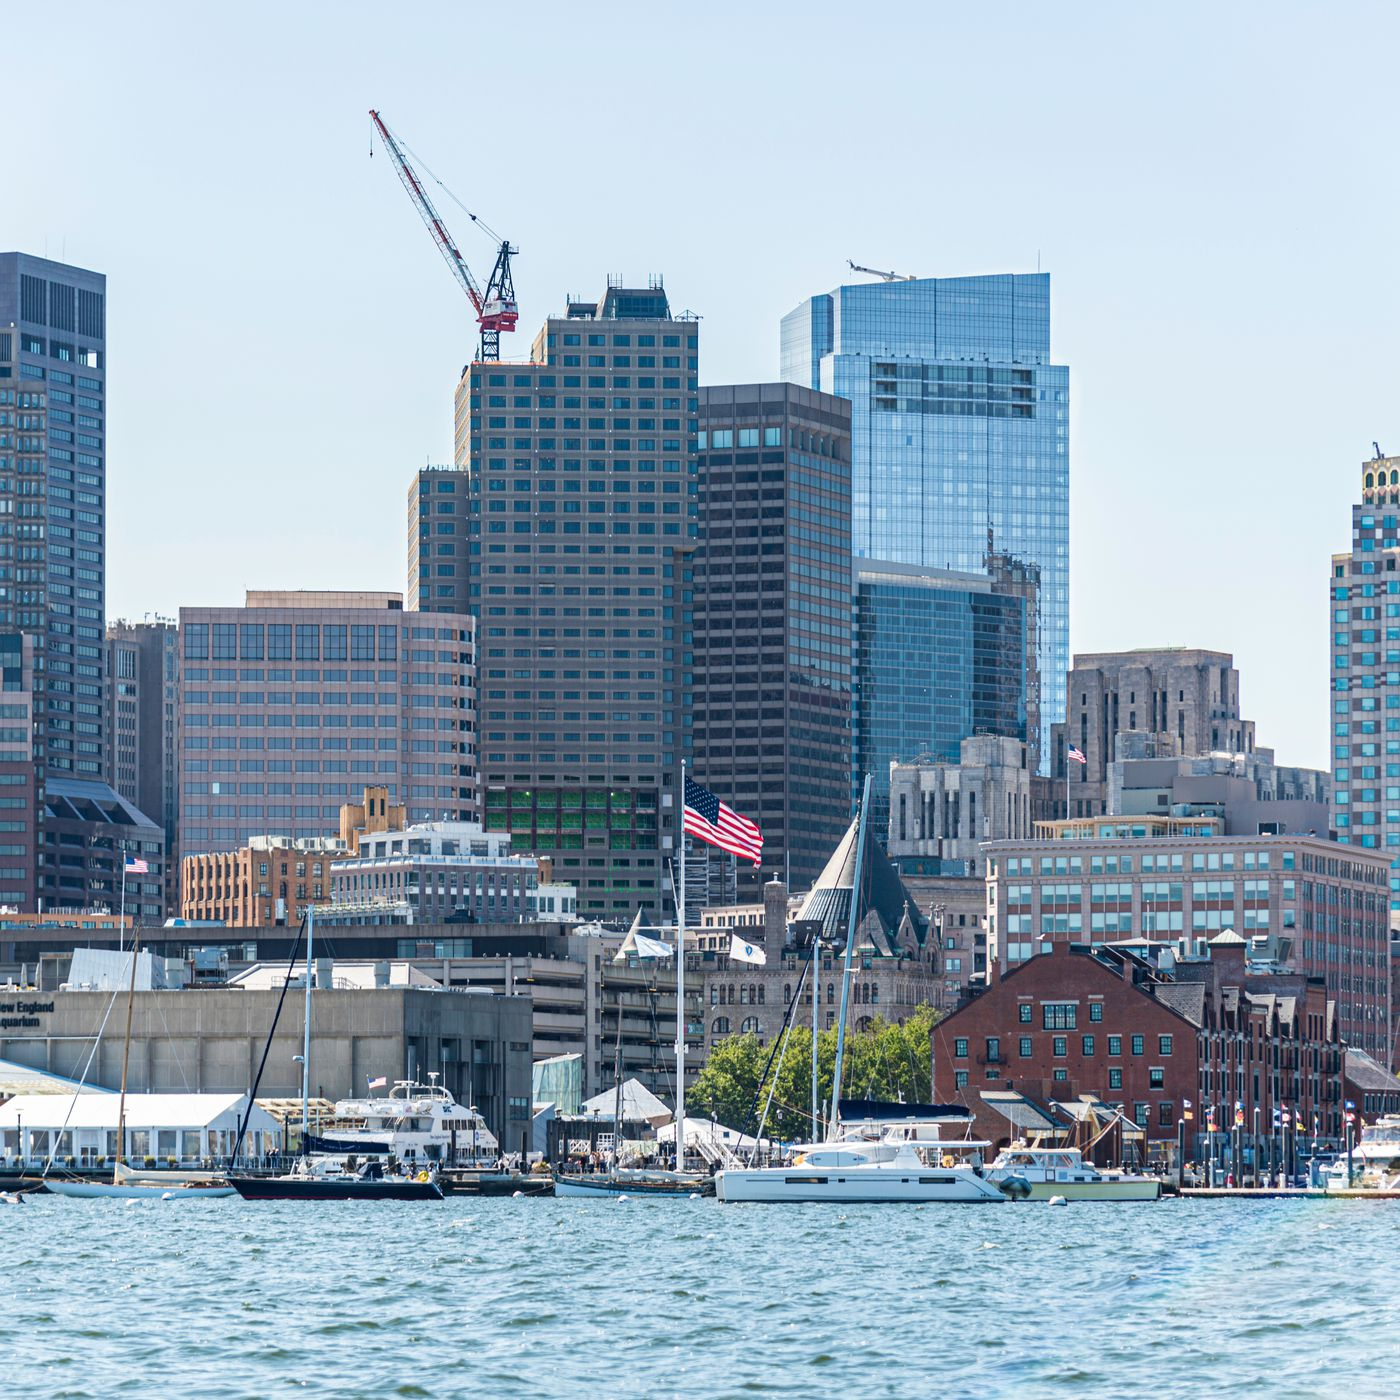 The Boston Area S 2019 Building Of The Year Vote Now Curbed Boston Check out boston's most iconic federal buildings. the boston area s 2019 building of the